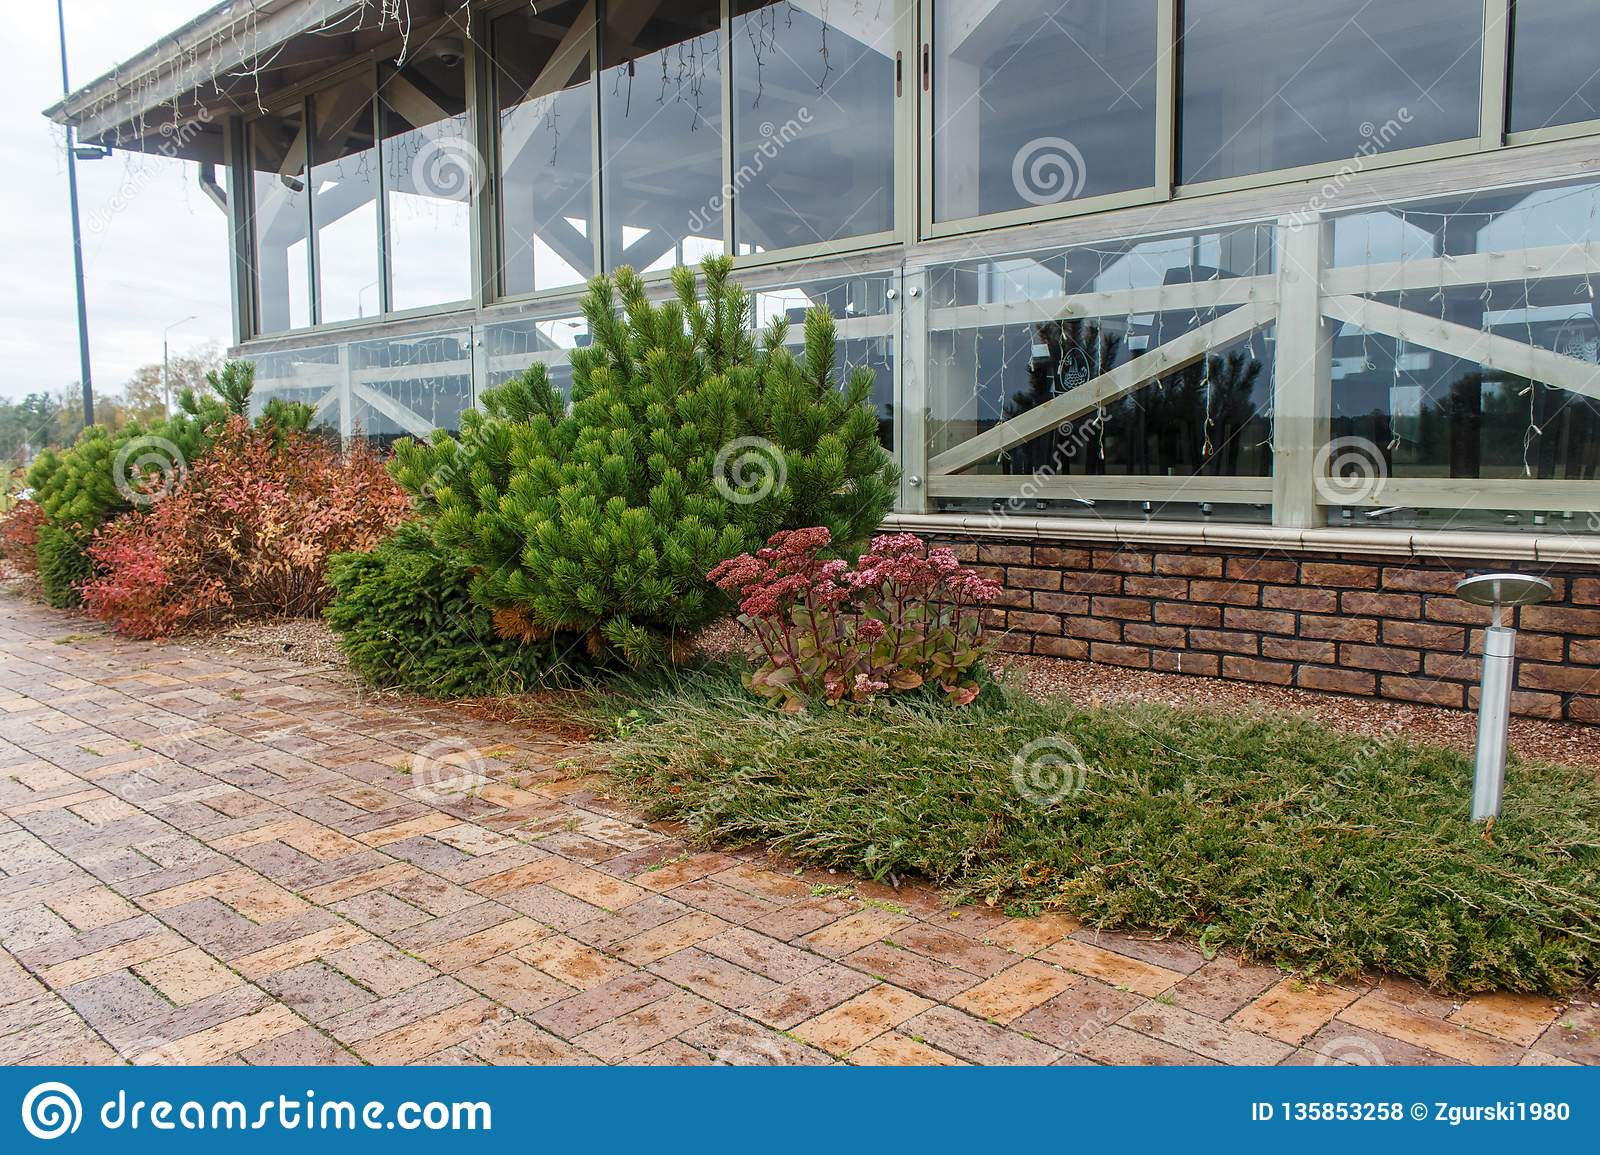 Modern Restaurant With Tile Pavement And Landscape Design Stock Photo Image Of Design Outdoor 135853258